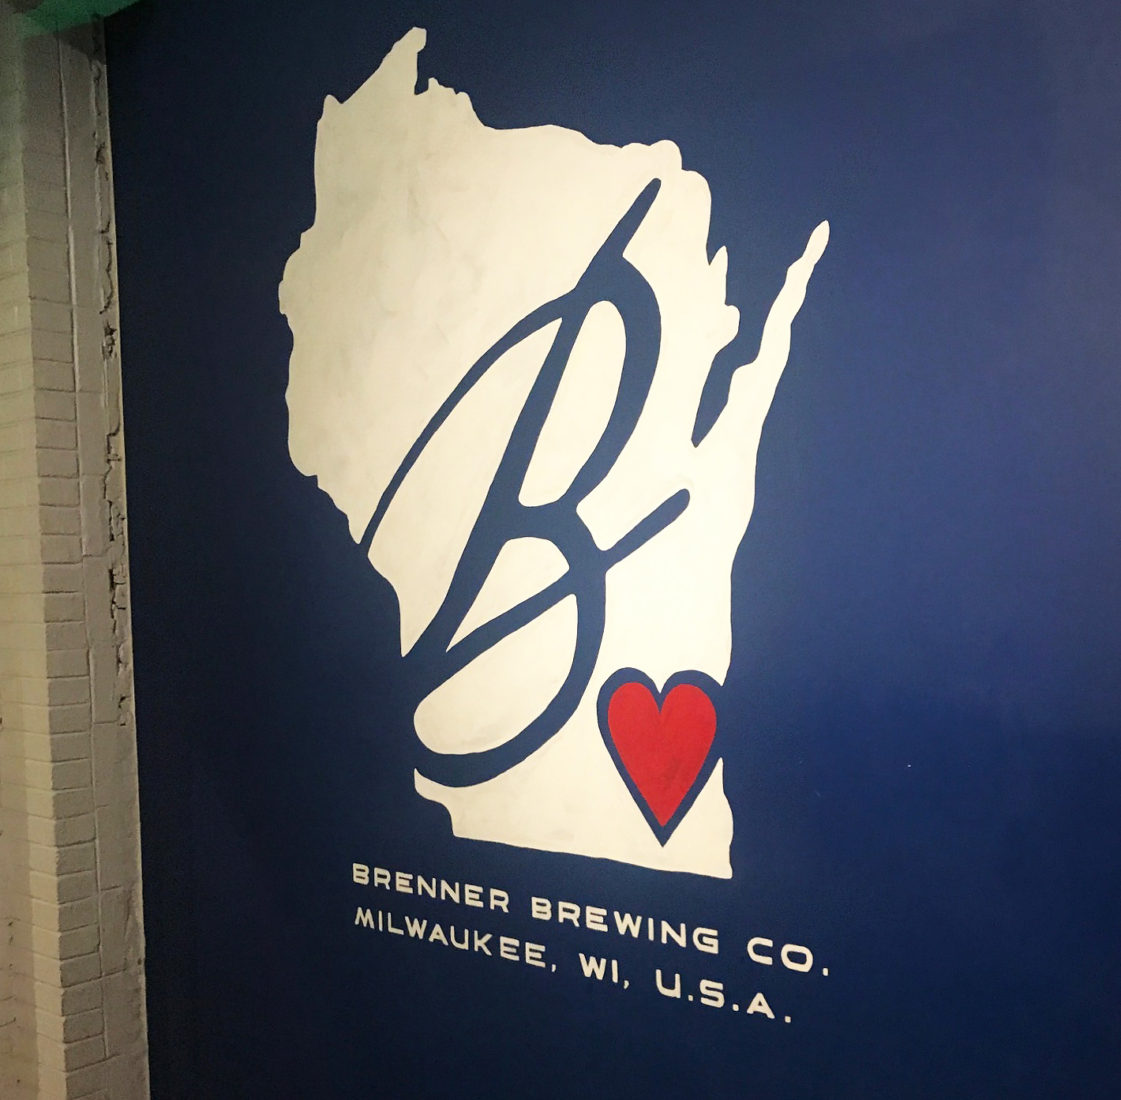 342. Brenner Brewing Co, Milwaukee WI, 2017